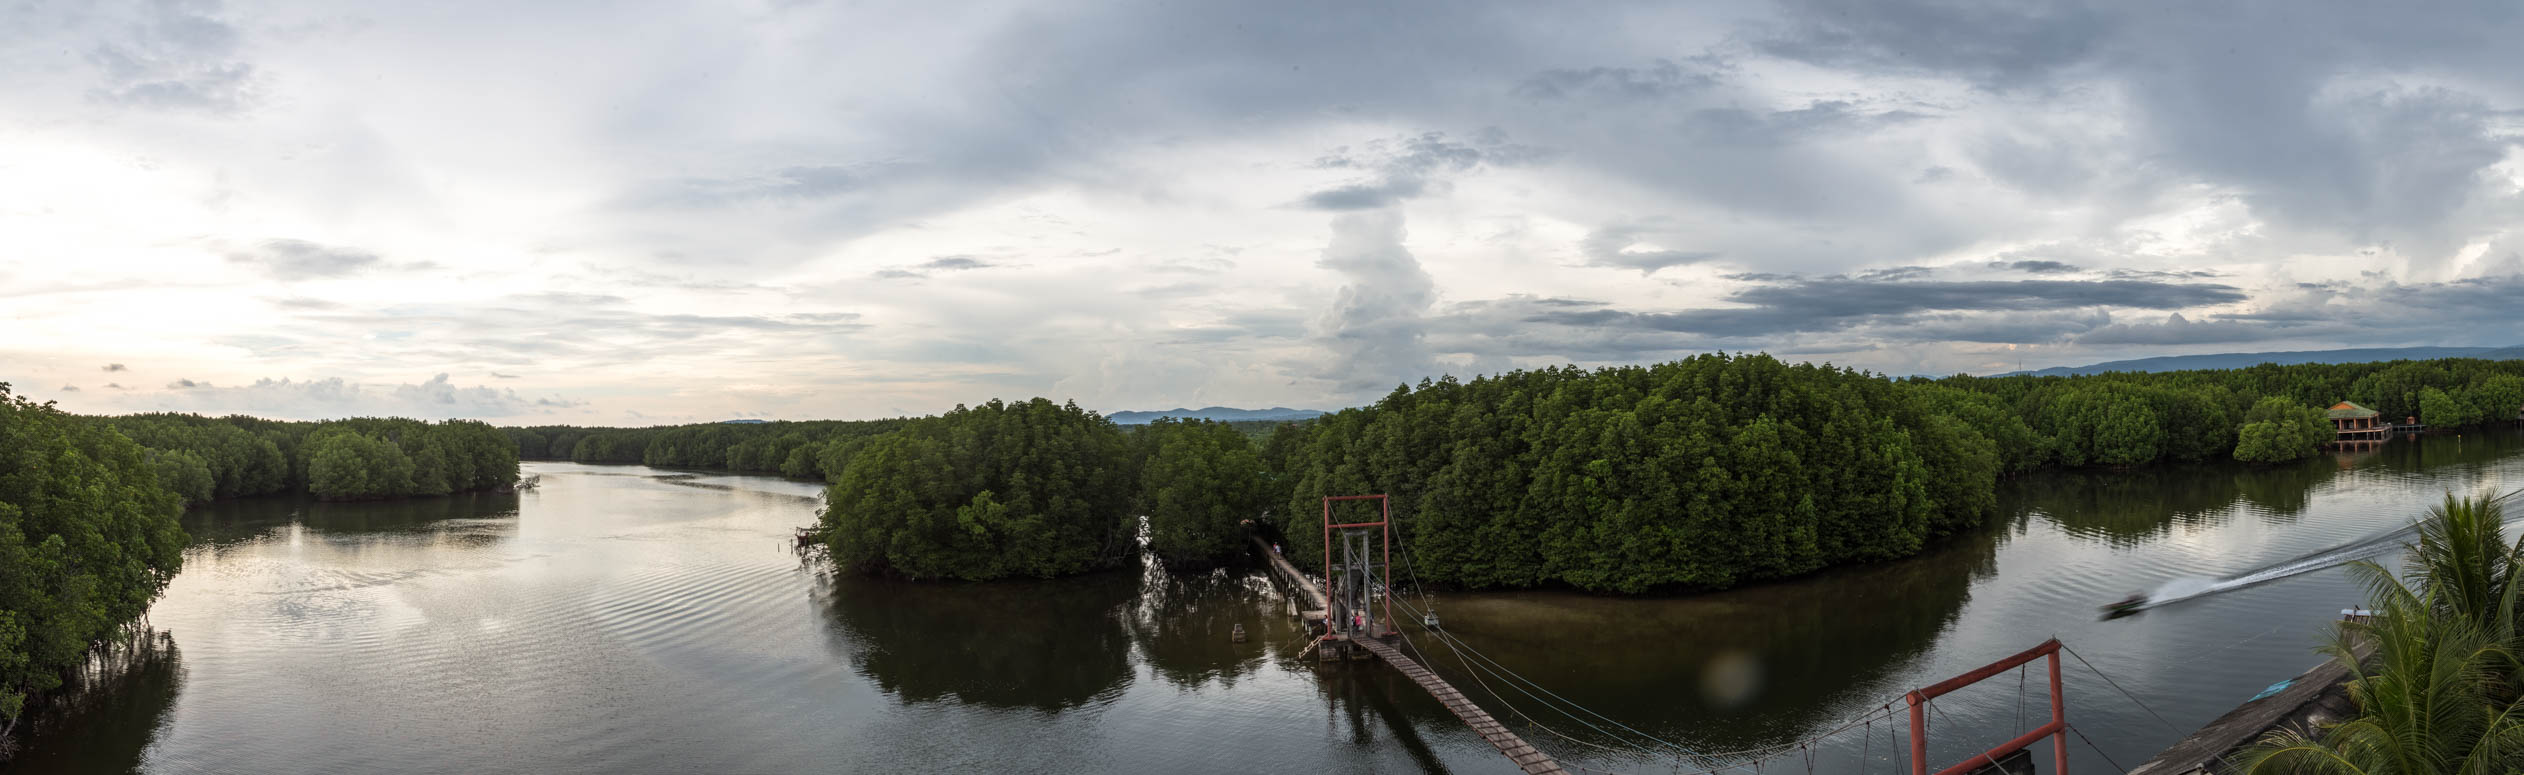 View over the mangrove forests in Koh Kong